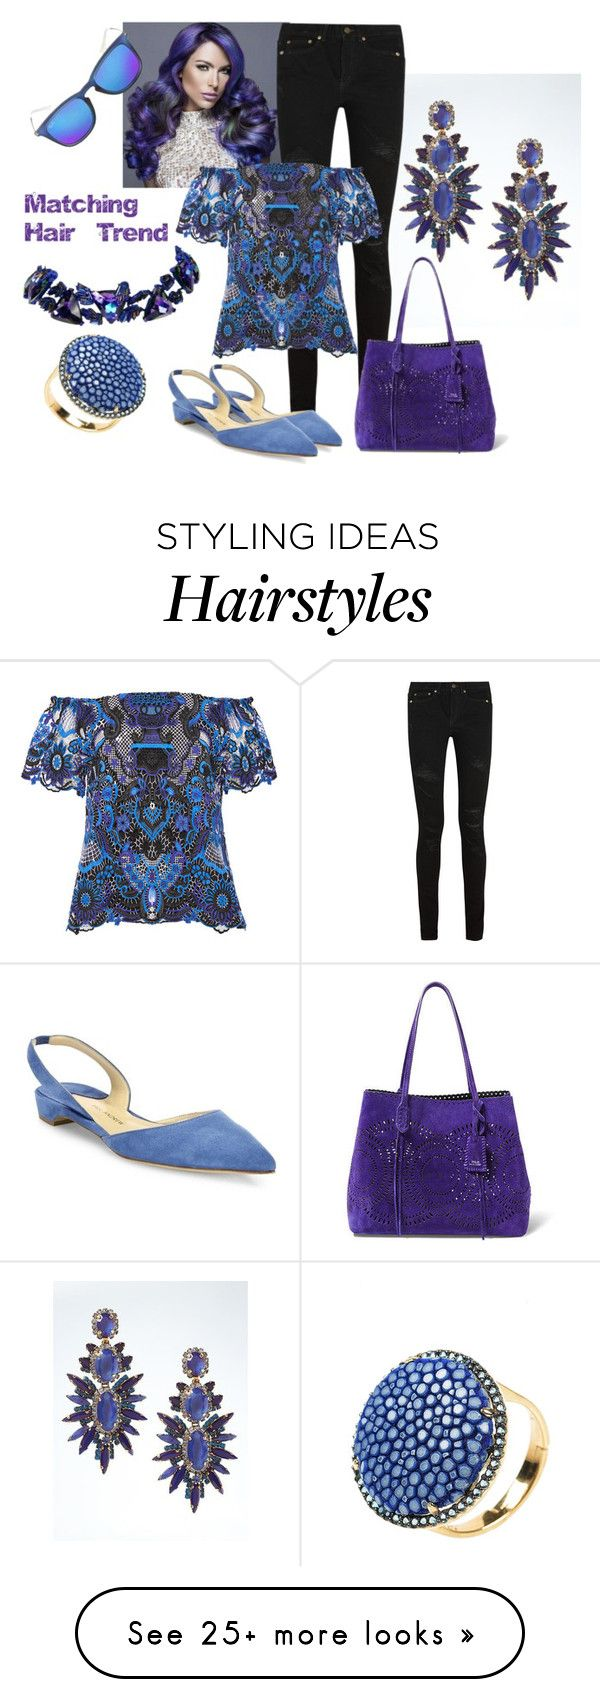 """Colorful matching hair Trend"" by ningaunis on Polyvore featuring Banana Republic, Yves Saint Laurent, Alice + Olivia, Paul Andrew, Ralph Lauren, Ray-Ban, Christian Lacroix, hairtrend and rainbowhair"